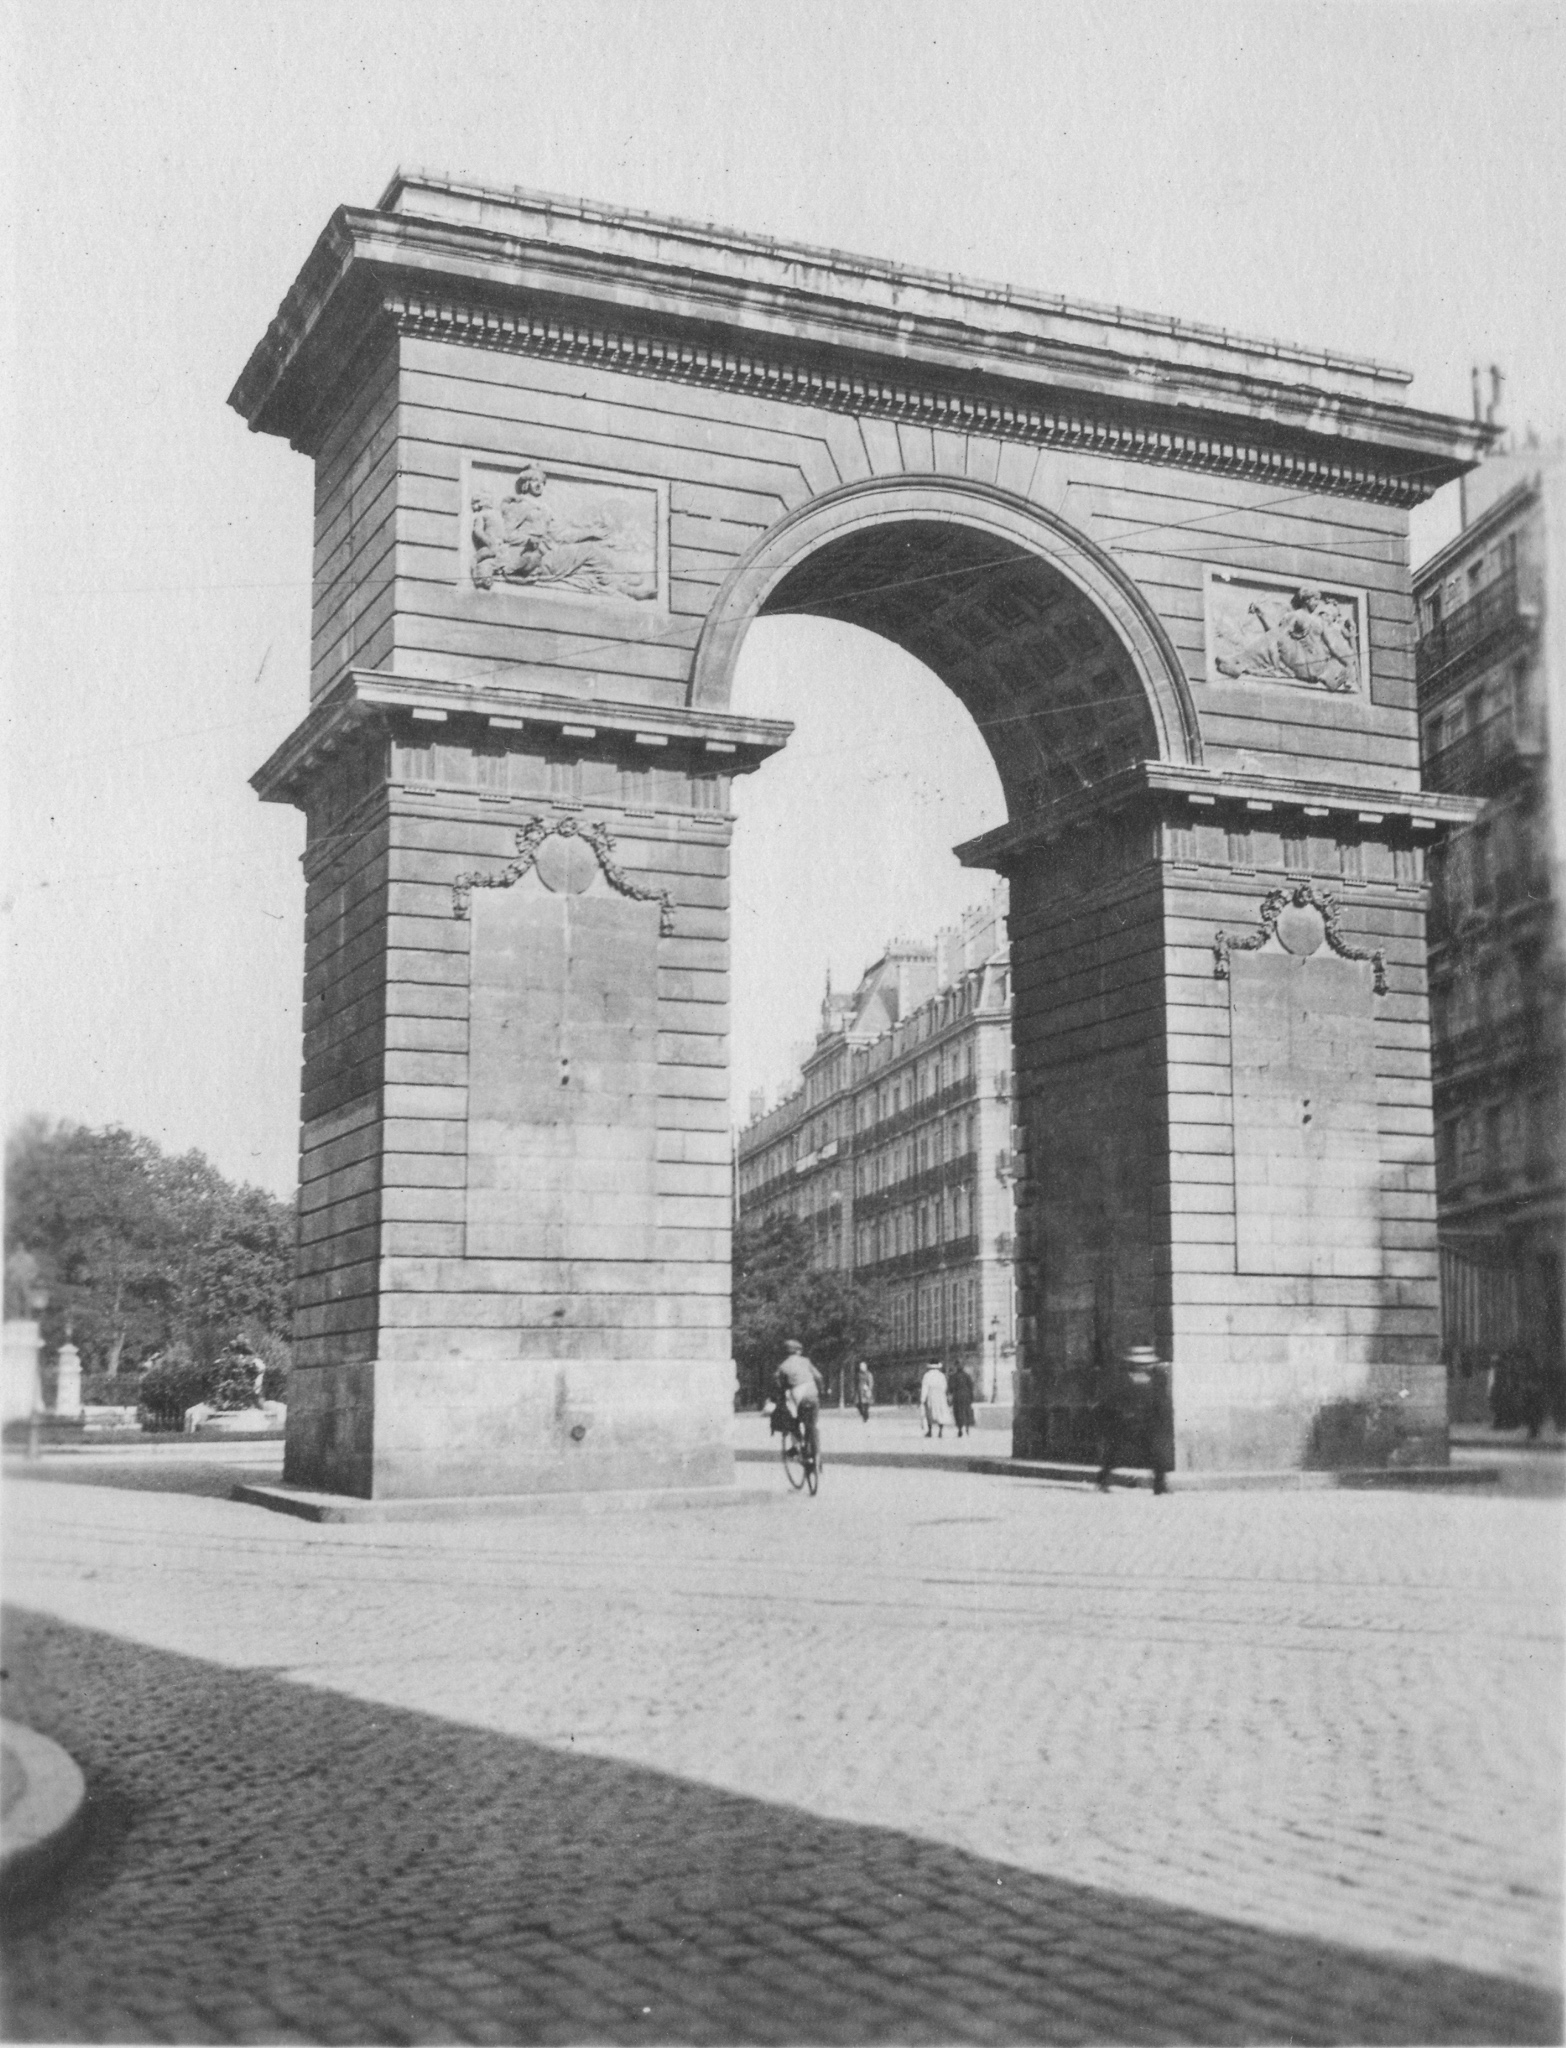 black and white photo of a triumphal arch